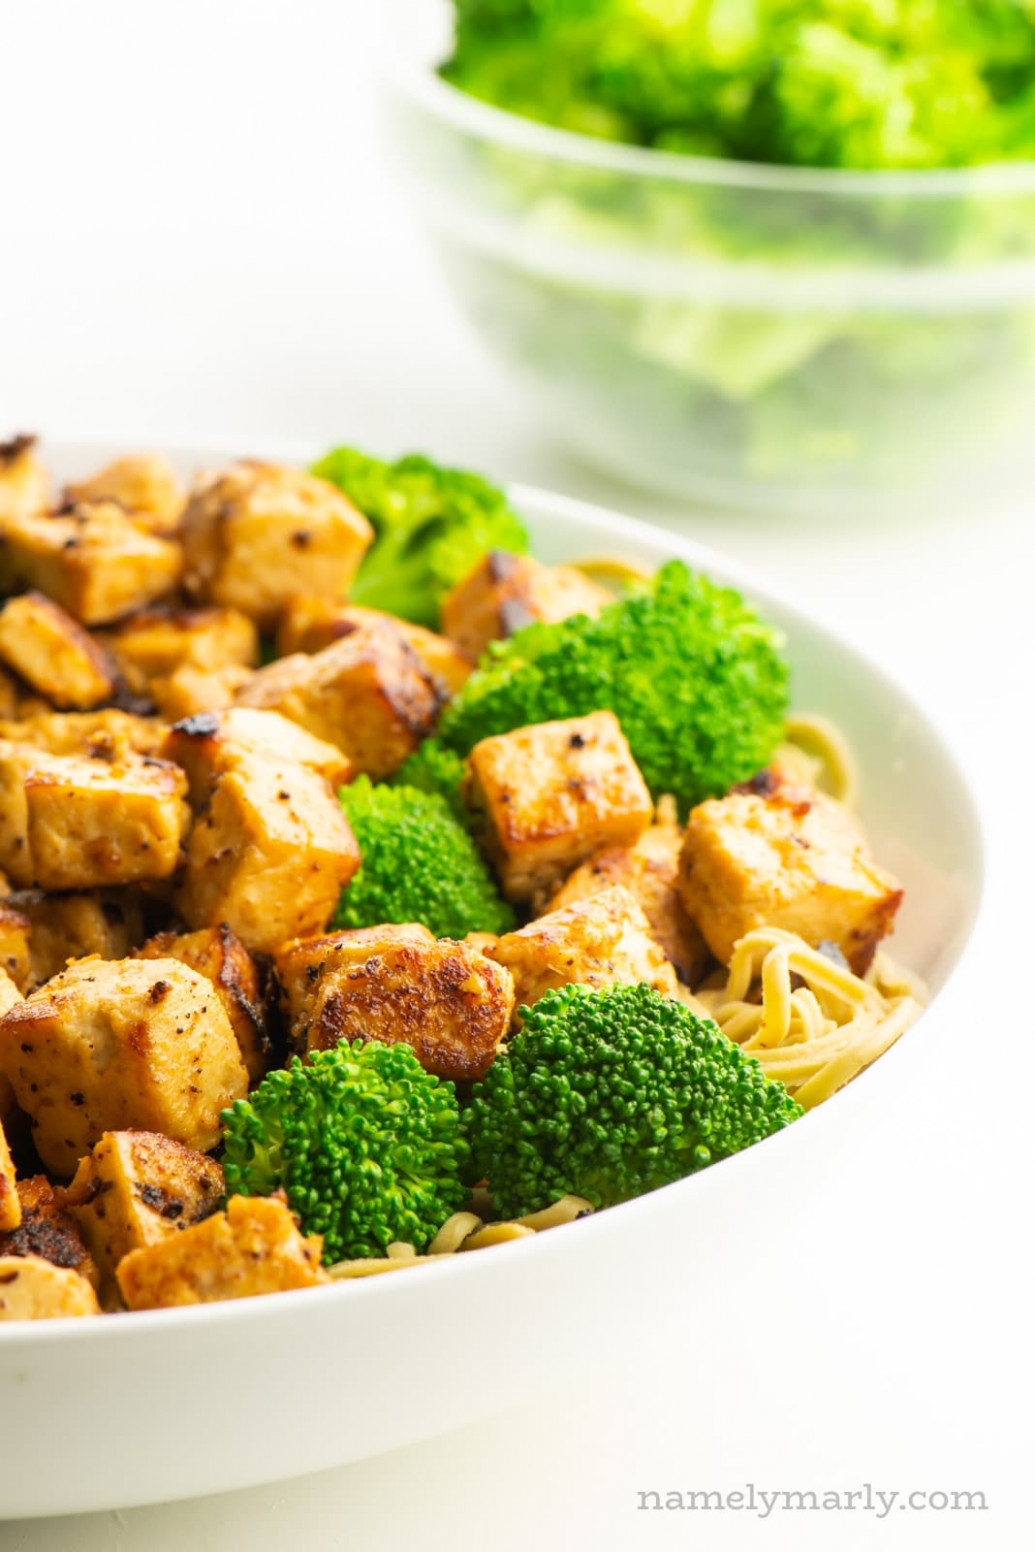 Miso Glazed Tofu - Recipes Vegetarian Low Carb